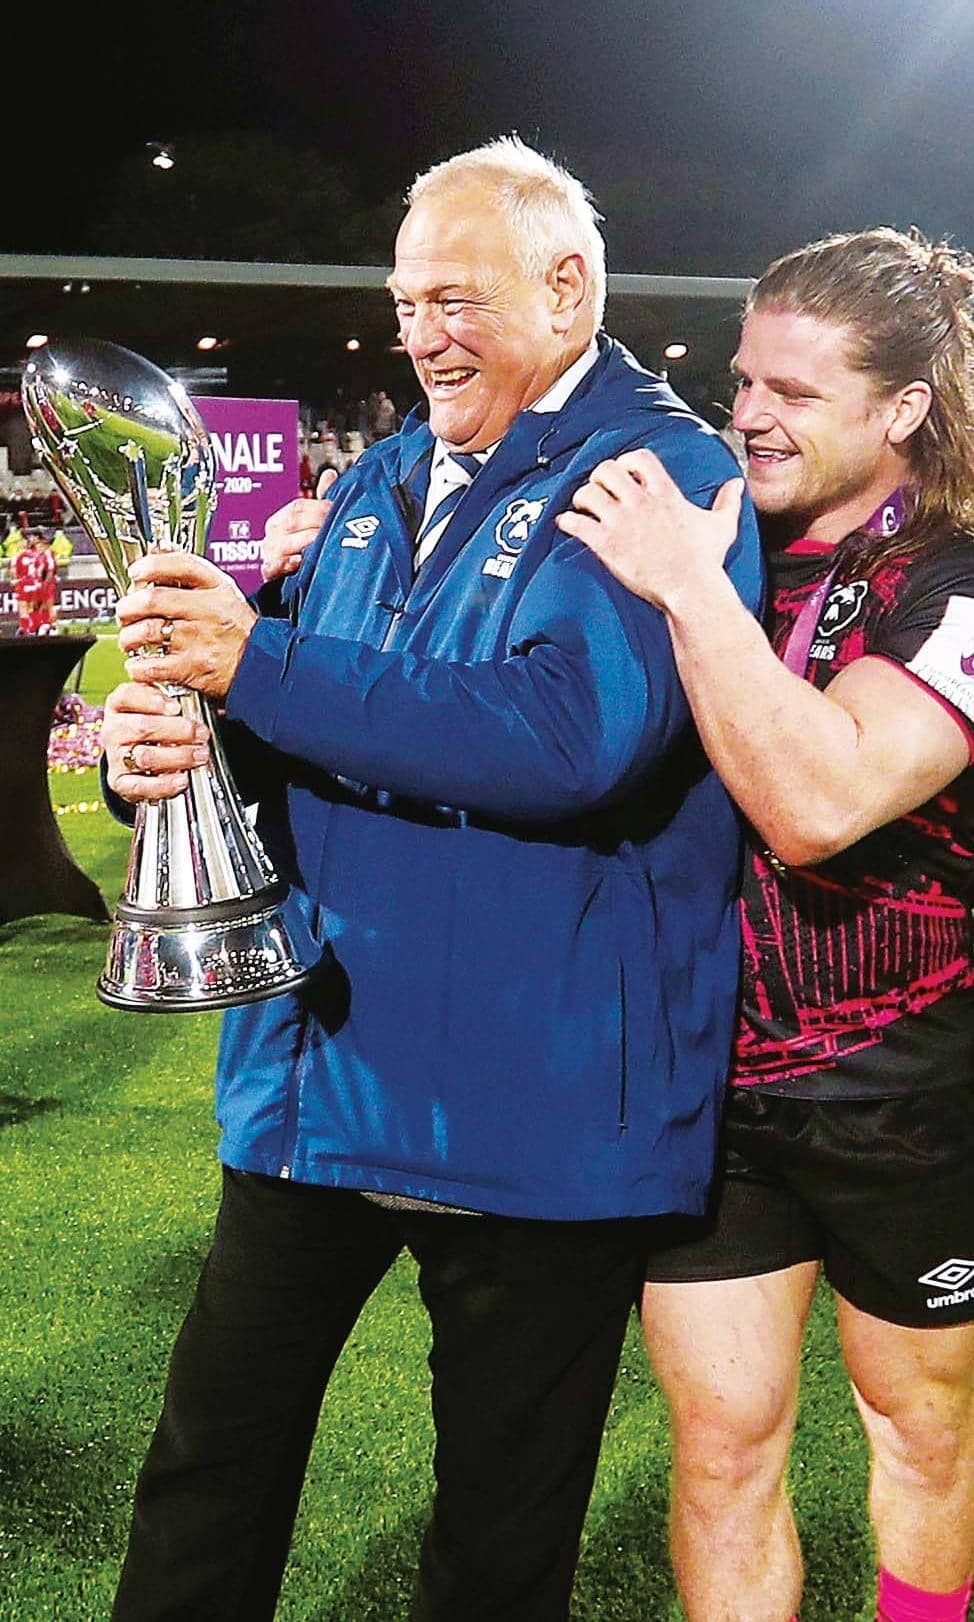 Bristol dynasty starts now says delighted Booy